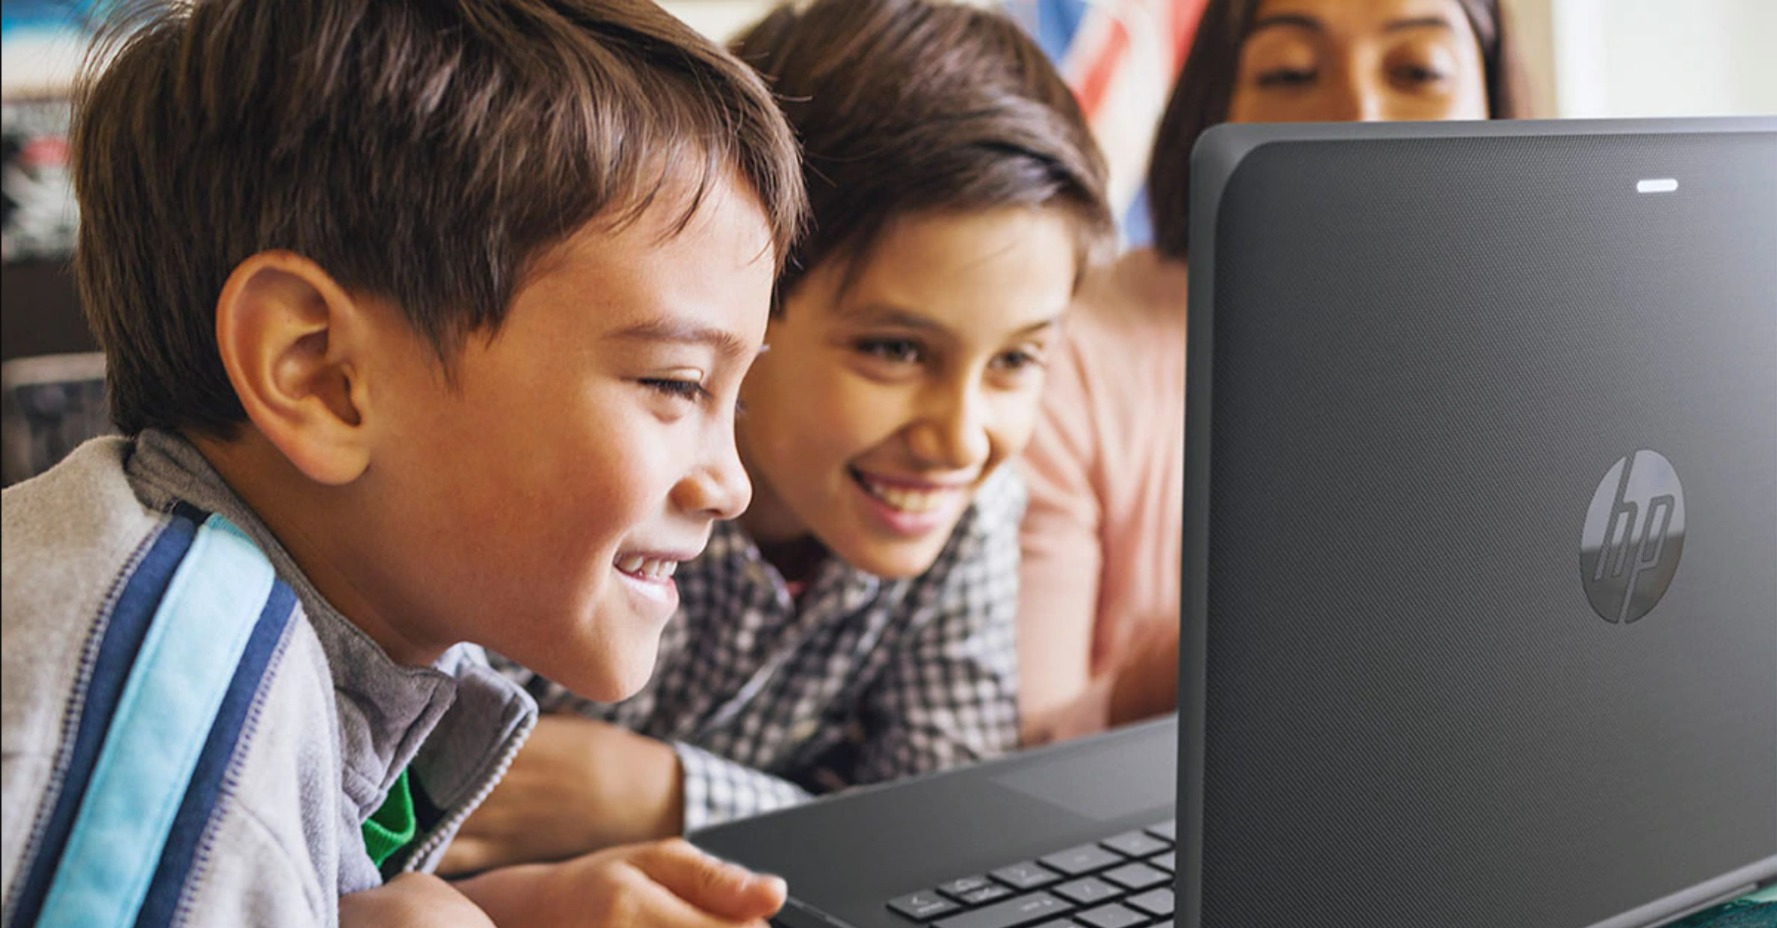 image of 2 boys looking at a laptop screen